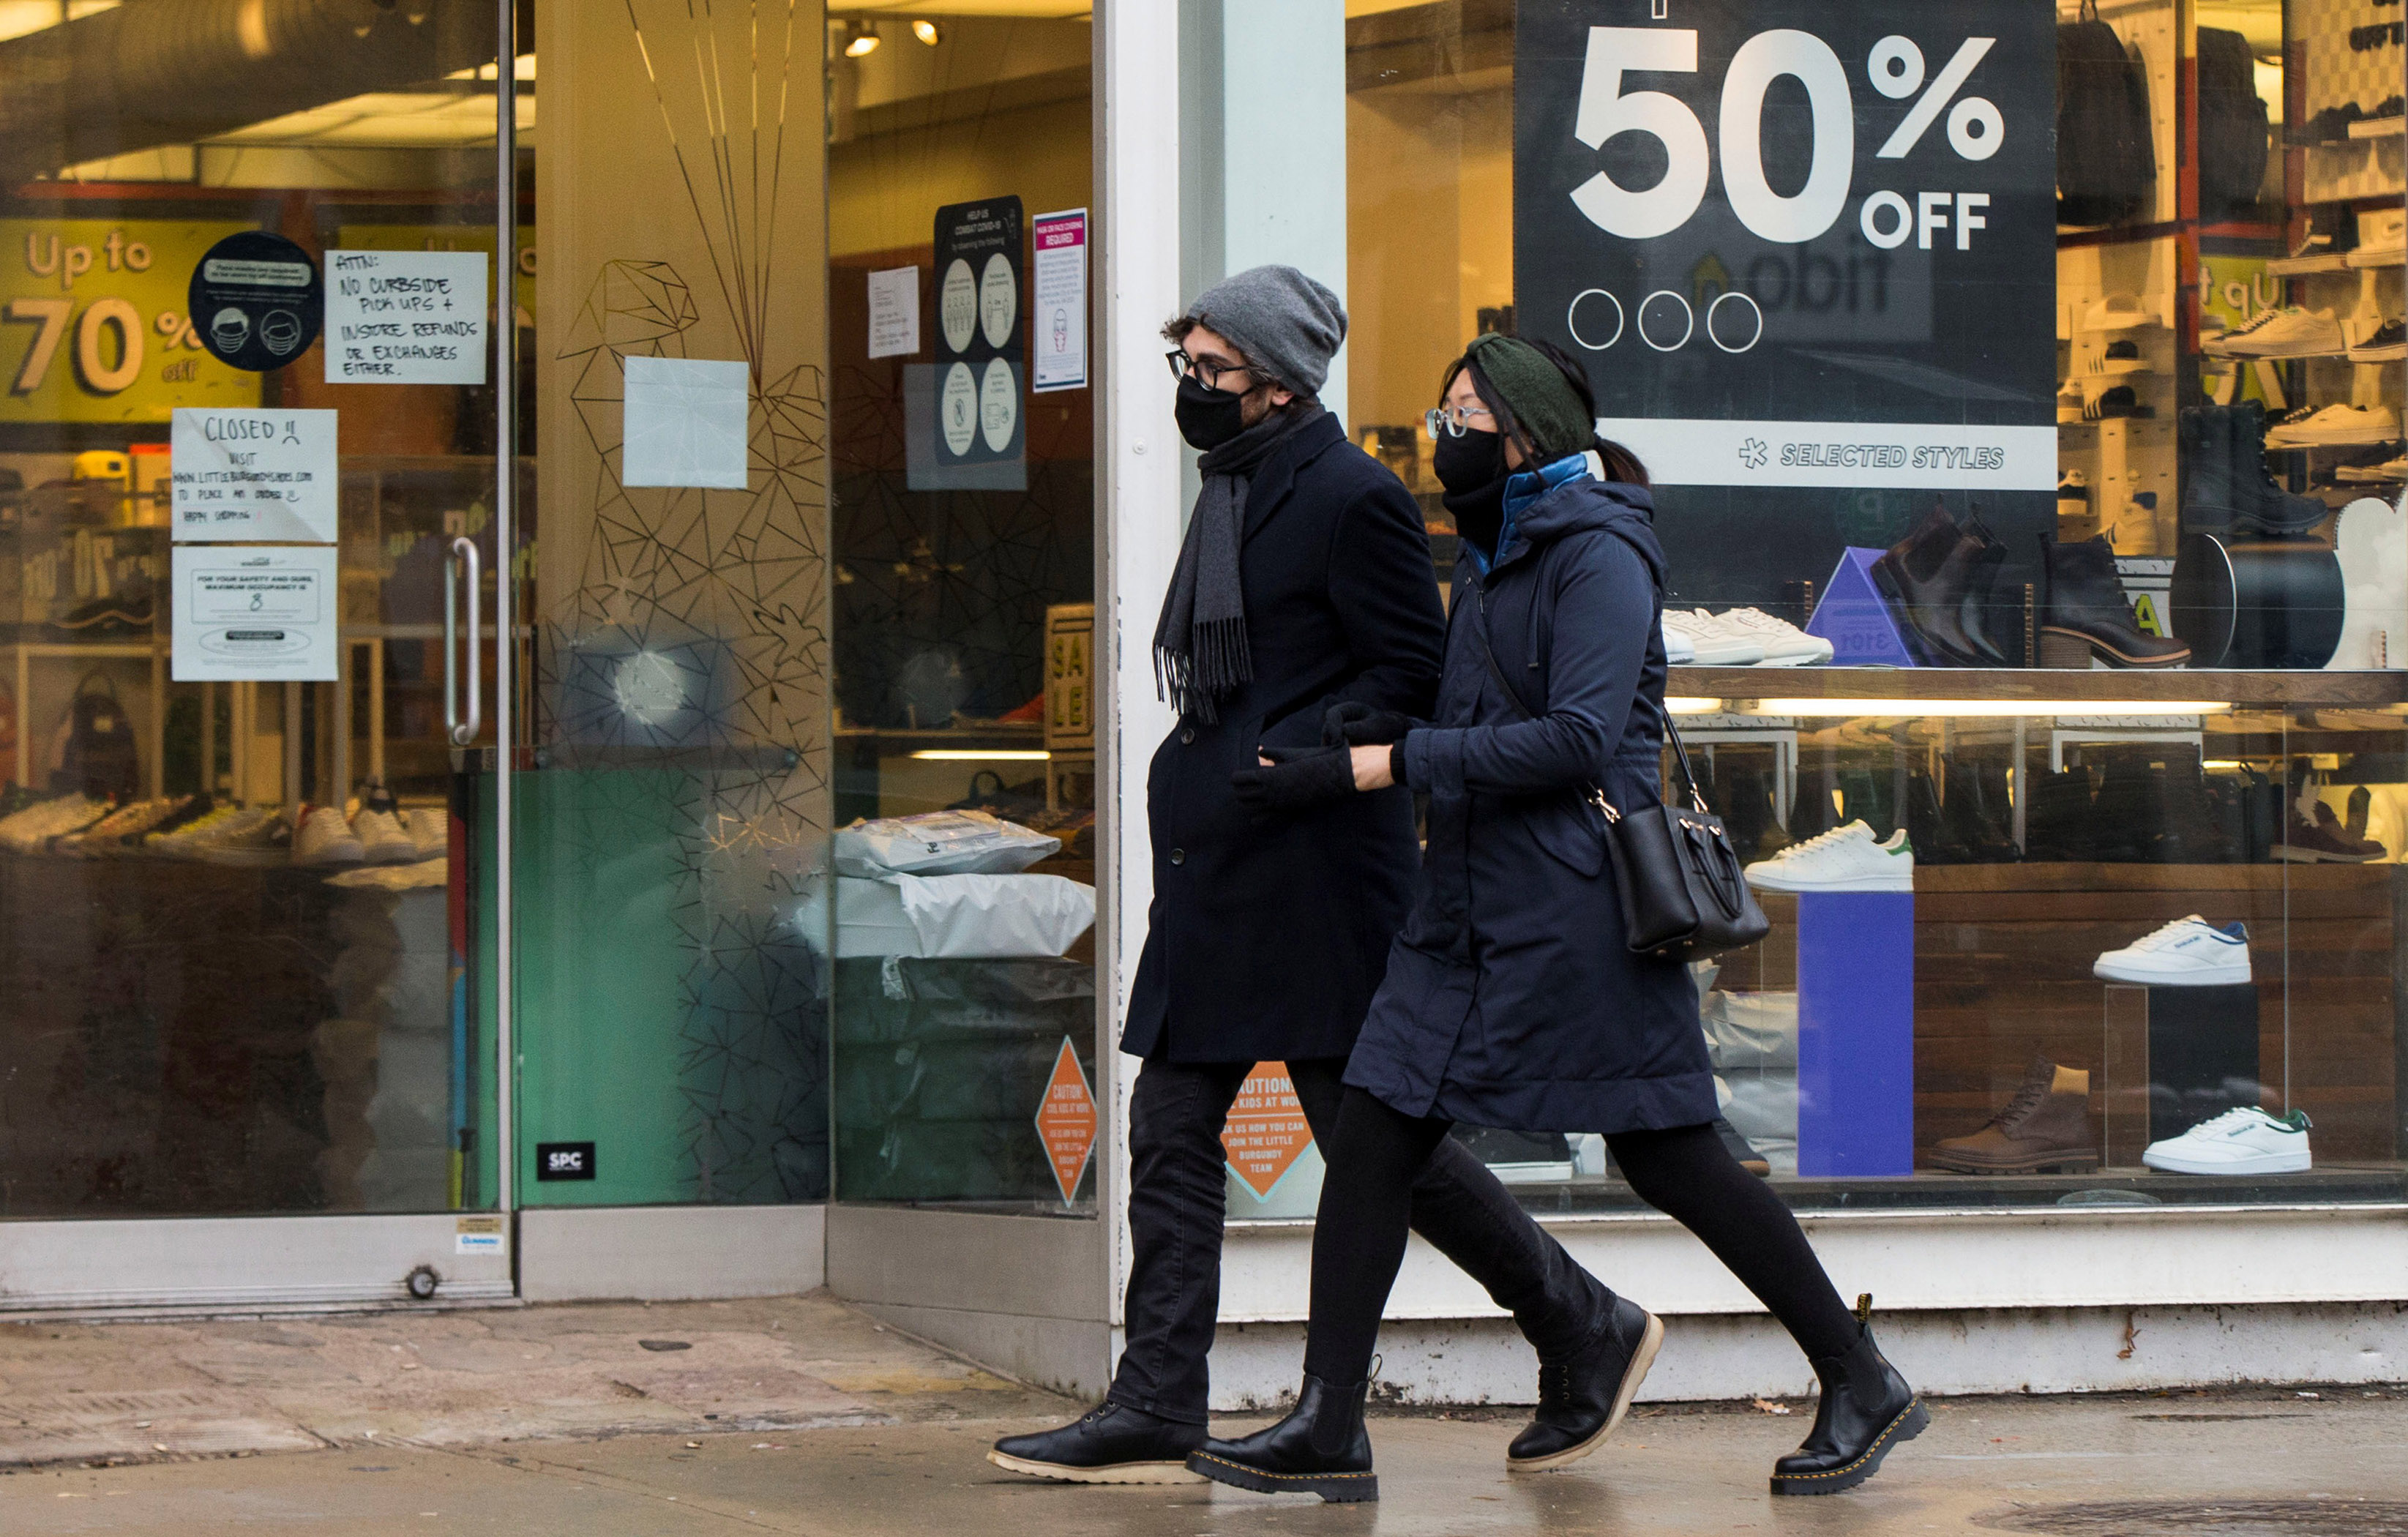 Curbing spending may be good for savings accounts, but it's not so good for an economy that relies on consumers to open their wallets (Zou Zheng/Xinhua/Getty Images)